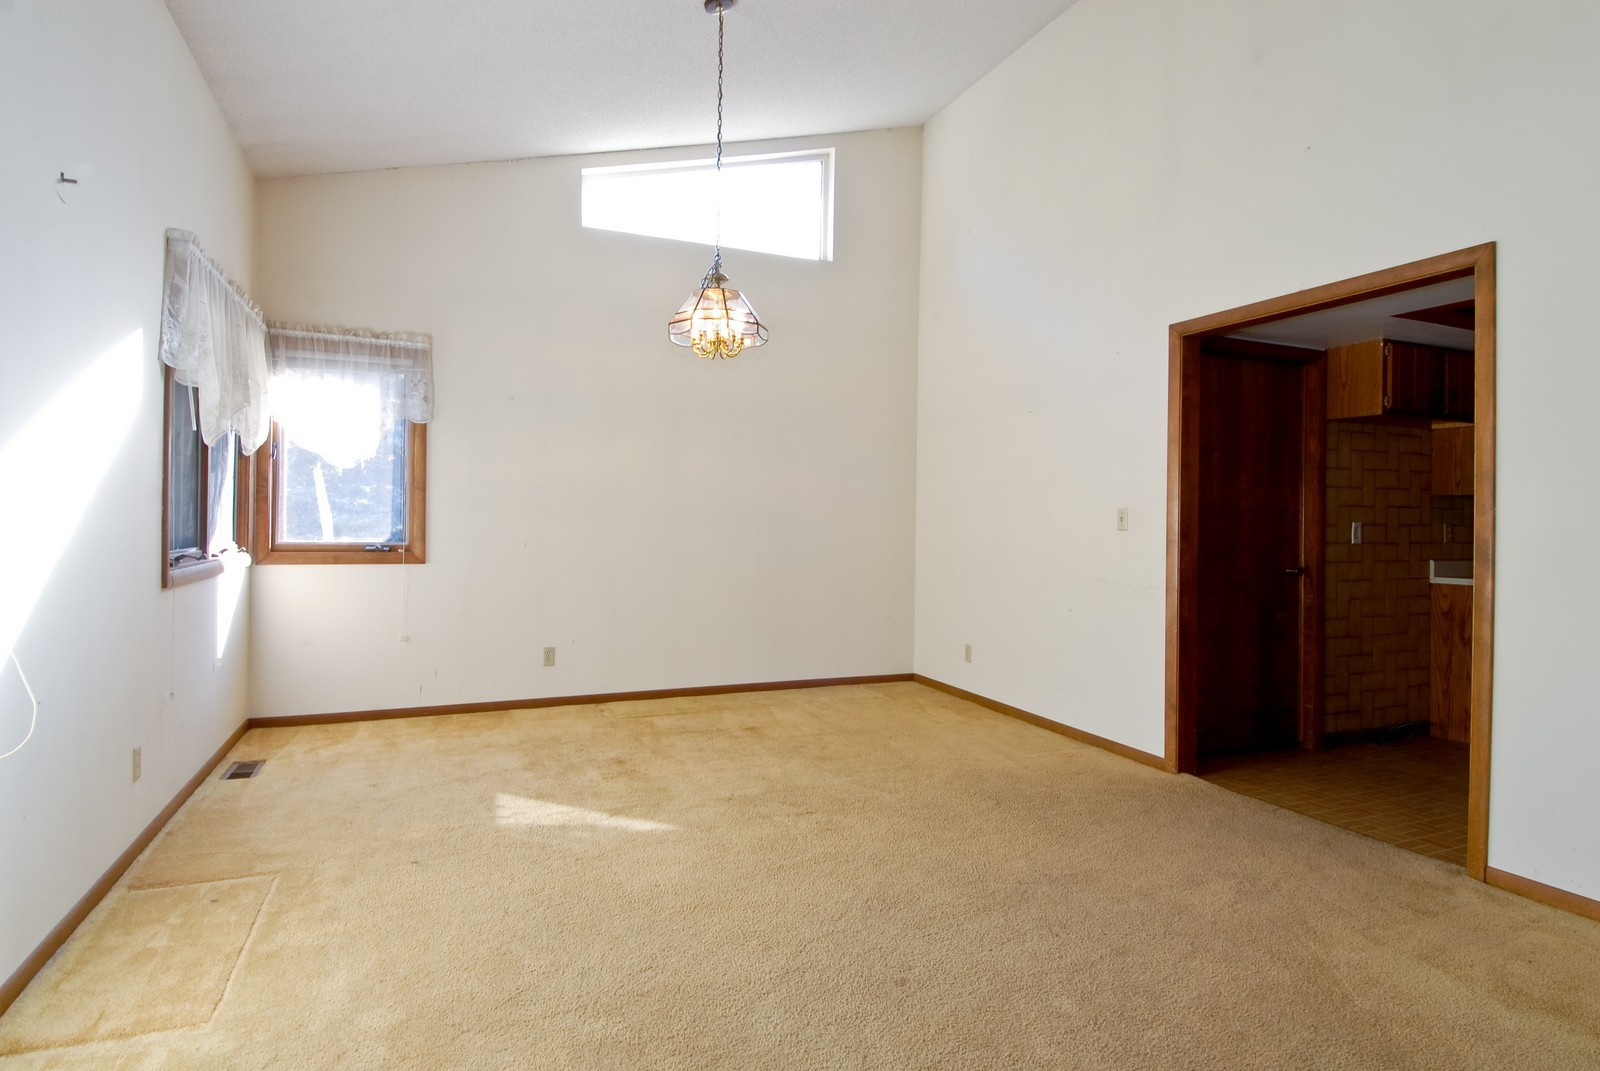 Real Estate Photography - 625 Konen Ave, Aurora, IL, 60505 - Dining Room